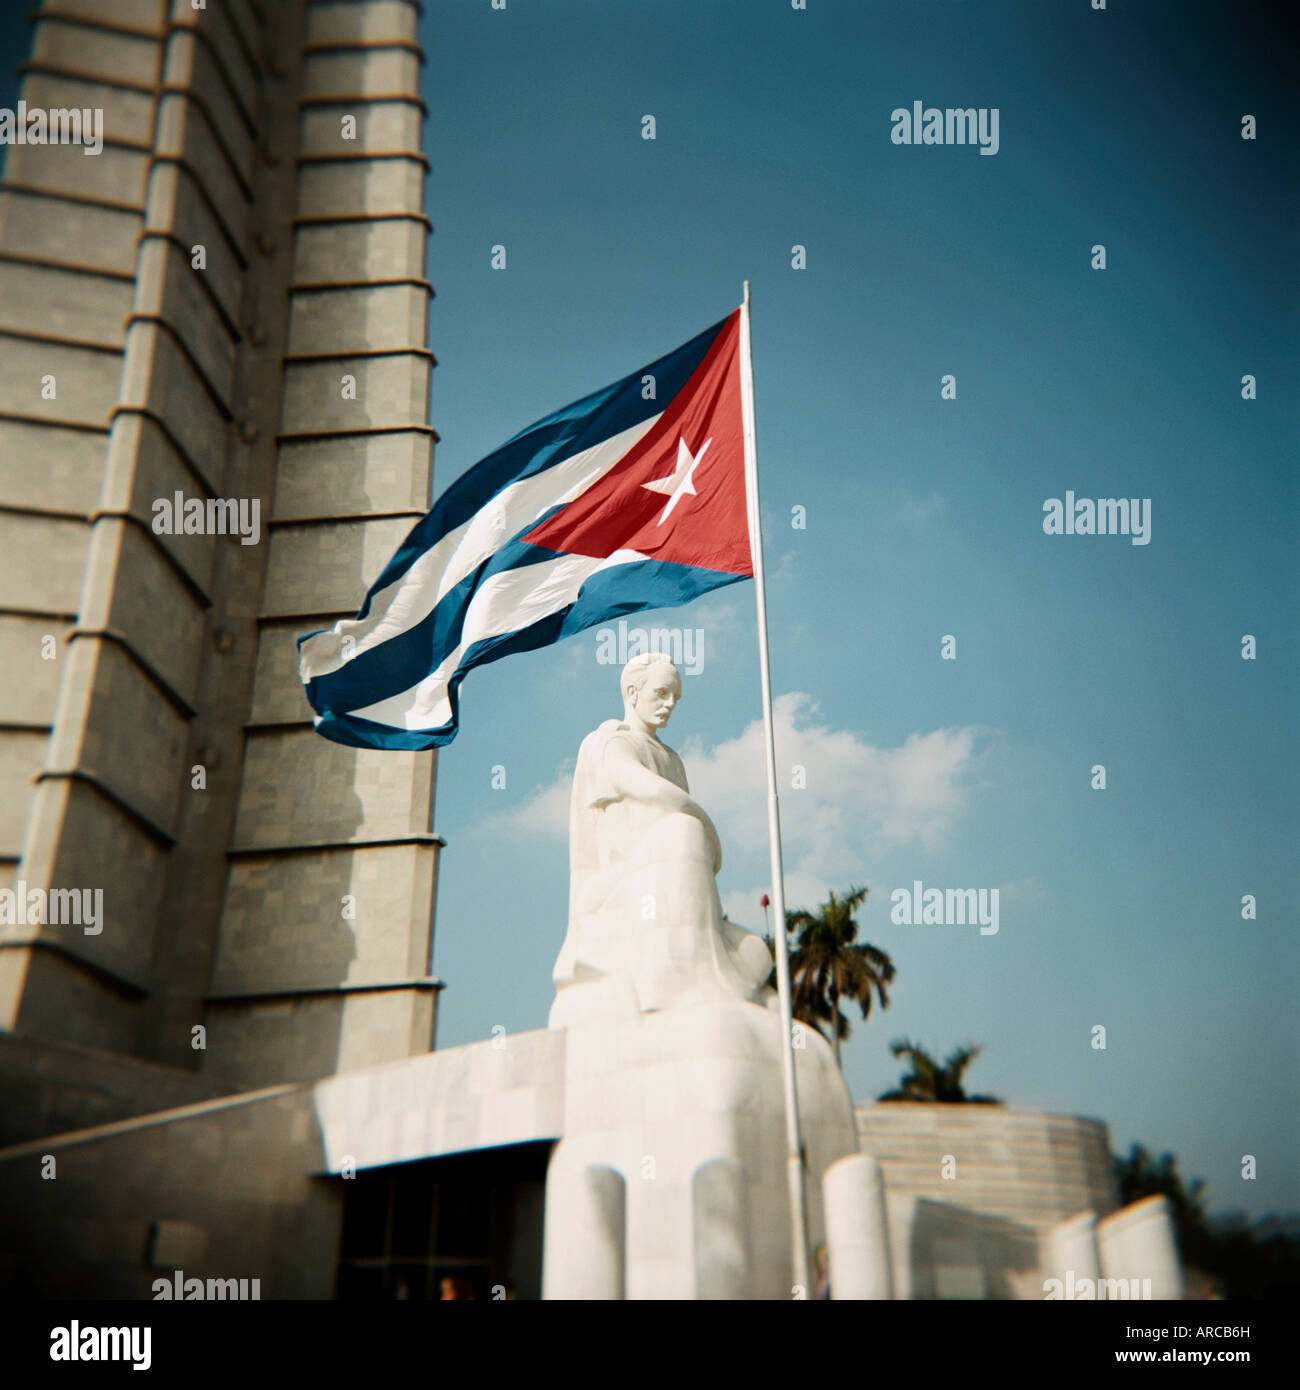 Cuban flag and Jose Marti memorial, Plaza de la Revolucion, Havana, Cuba, West Indies, Central America - Stock Image